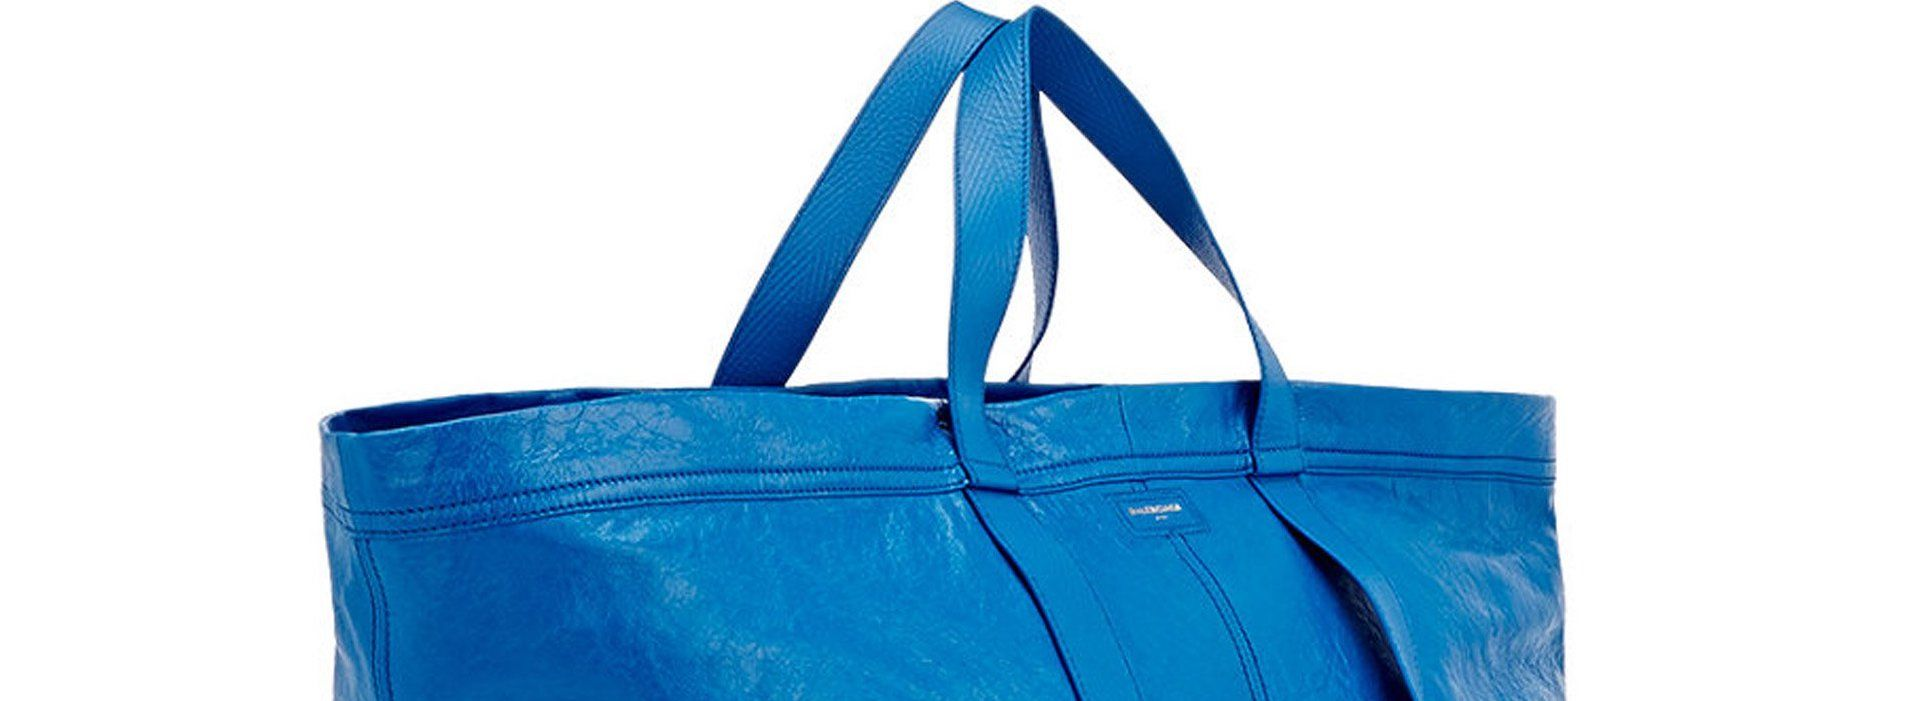 balenciaga-ikea-frakta-bag-fashion-design_dezeen_2364_hero